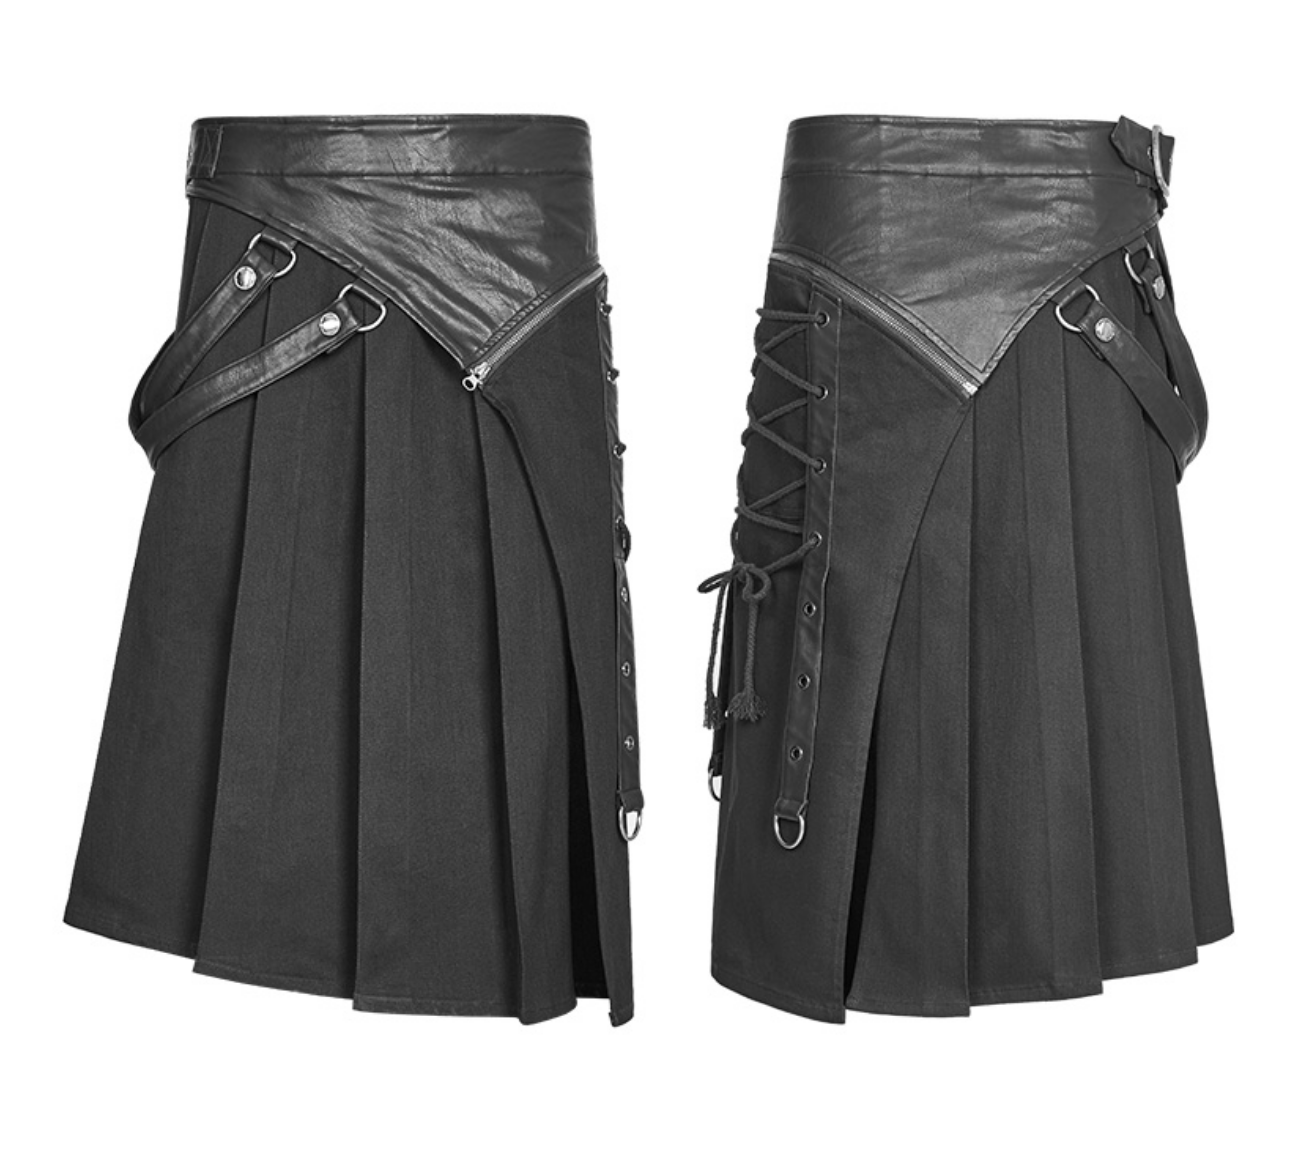 Kilt Skirt w/ Zip-Off Panel